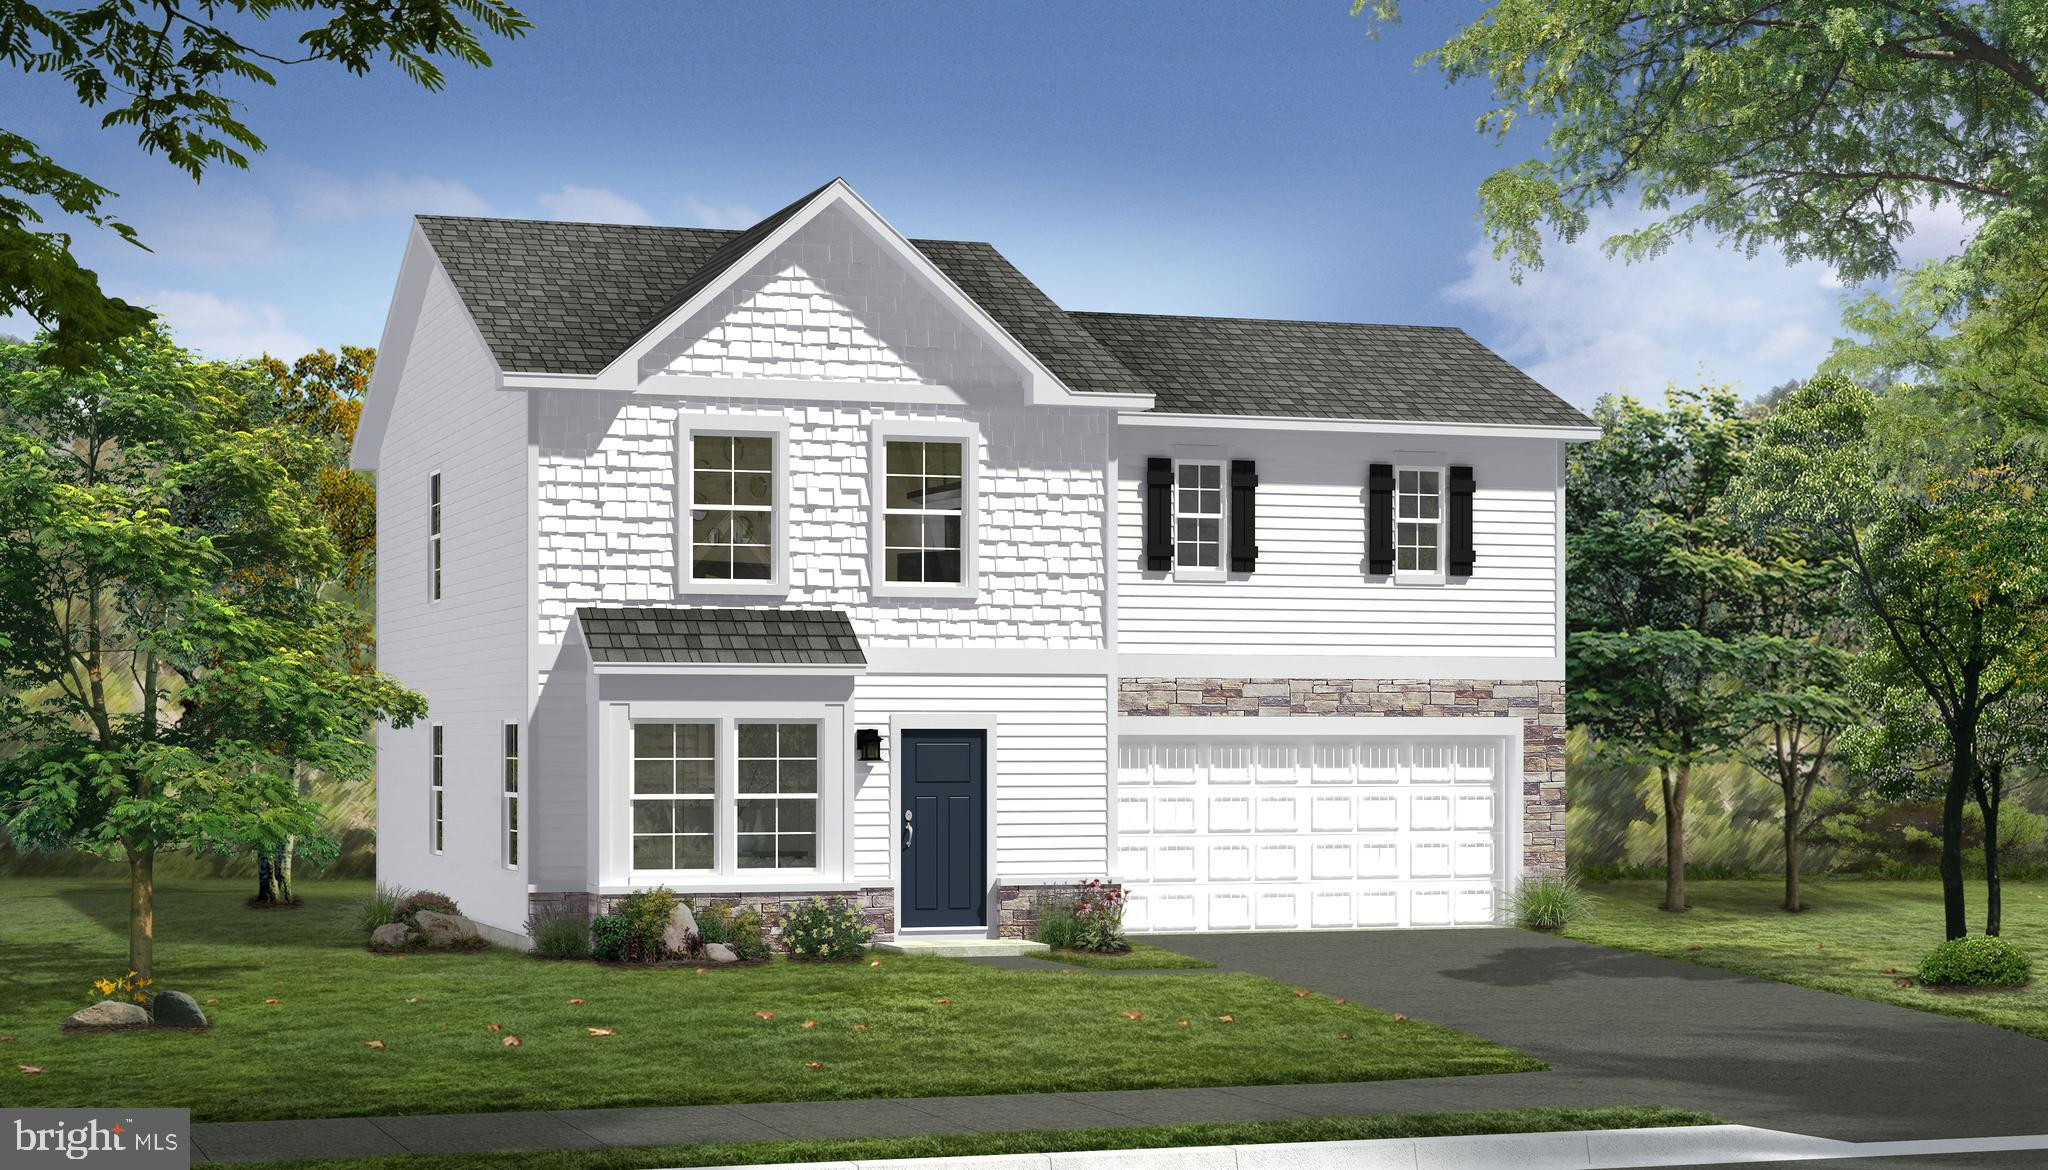 Affordable, Convenient to shopping, dining and I-81! Welcome home to this BRAND NEW 4B, 2.5BA, 2 Car